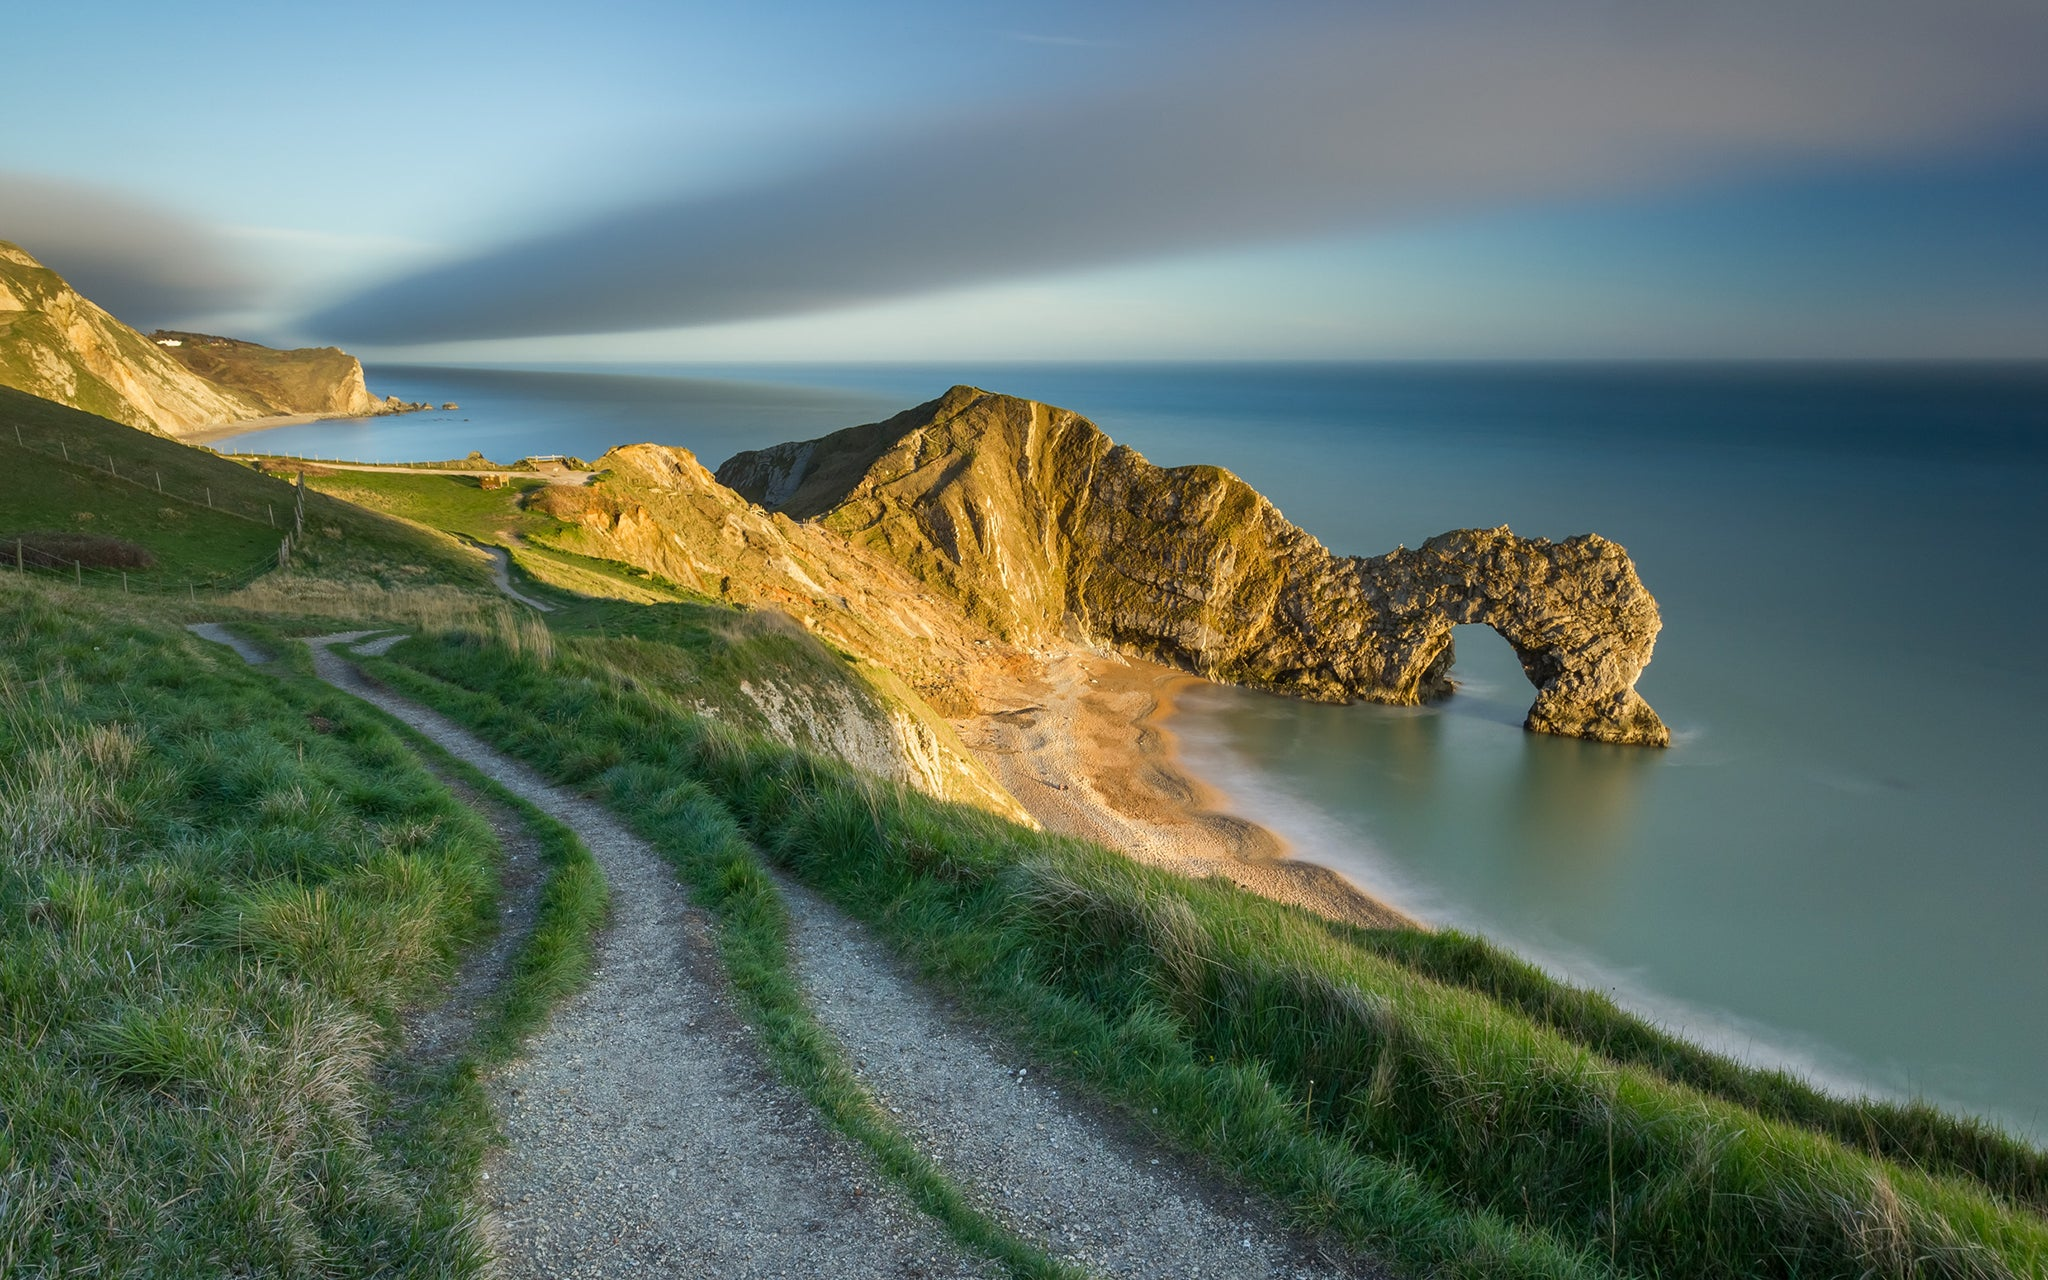 Landscape Photographer of the Year 2014: From the Jurassic Coast to Angelsey